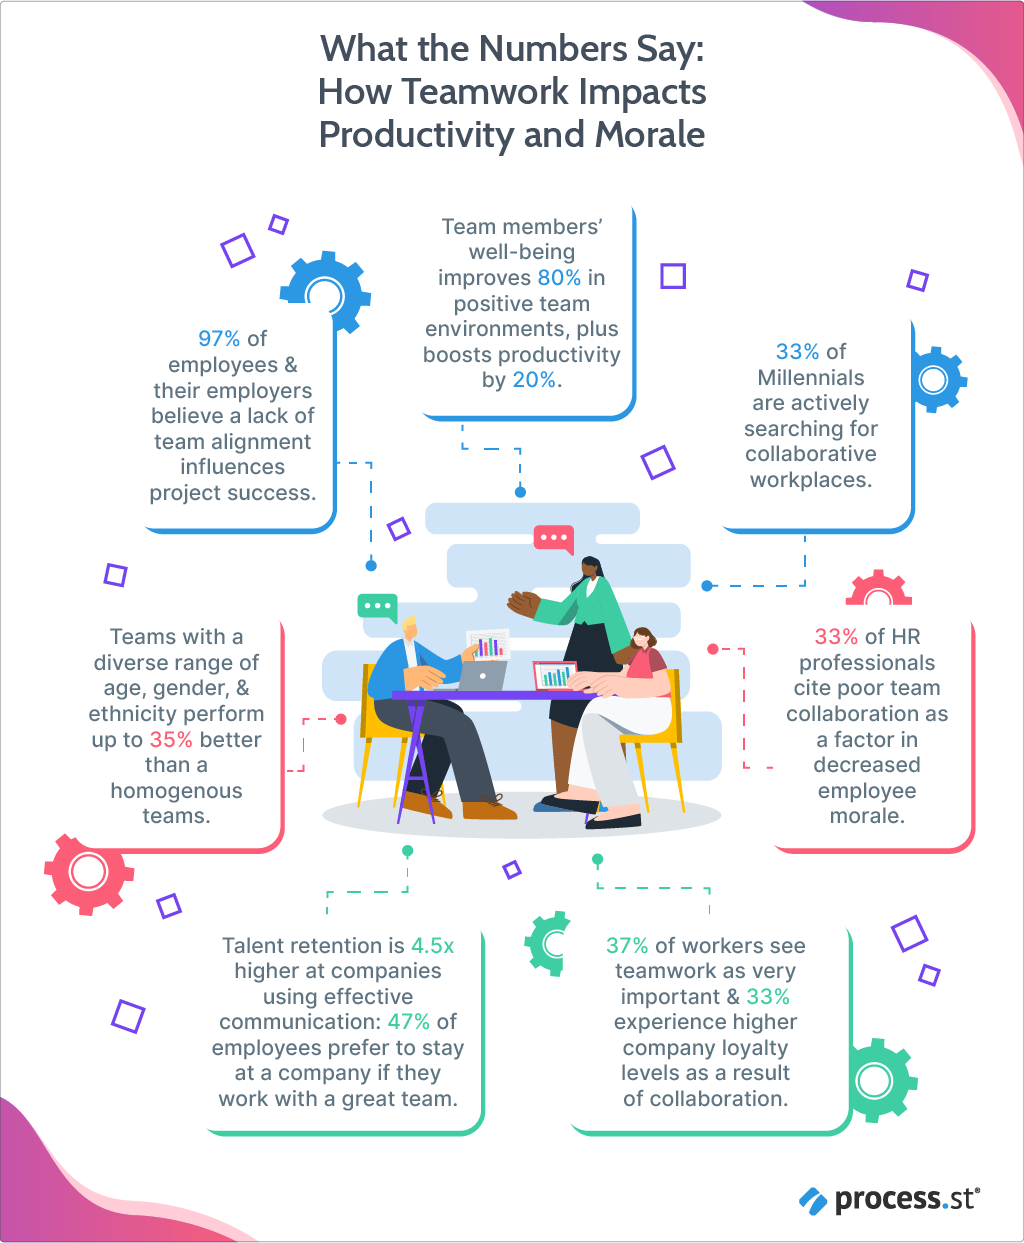 How teamwork impacts productivity and morale